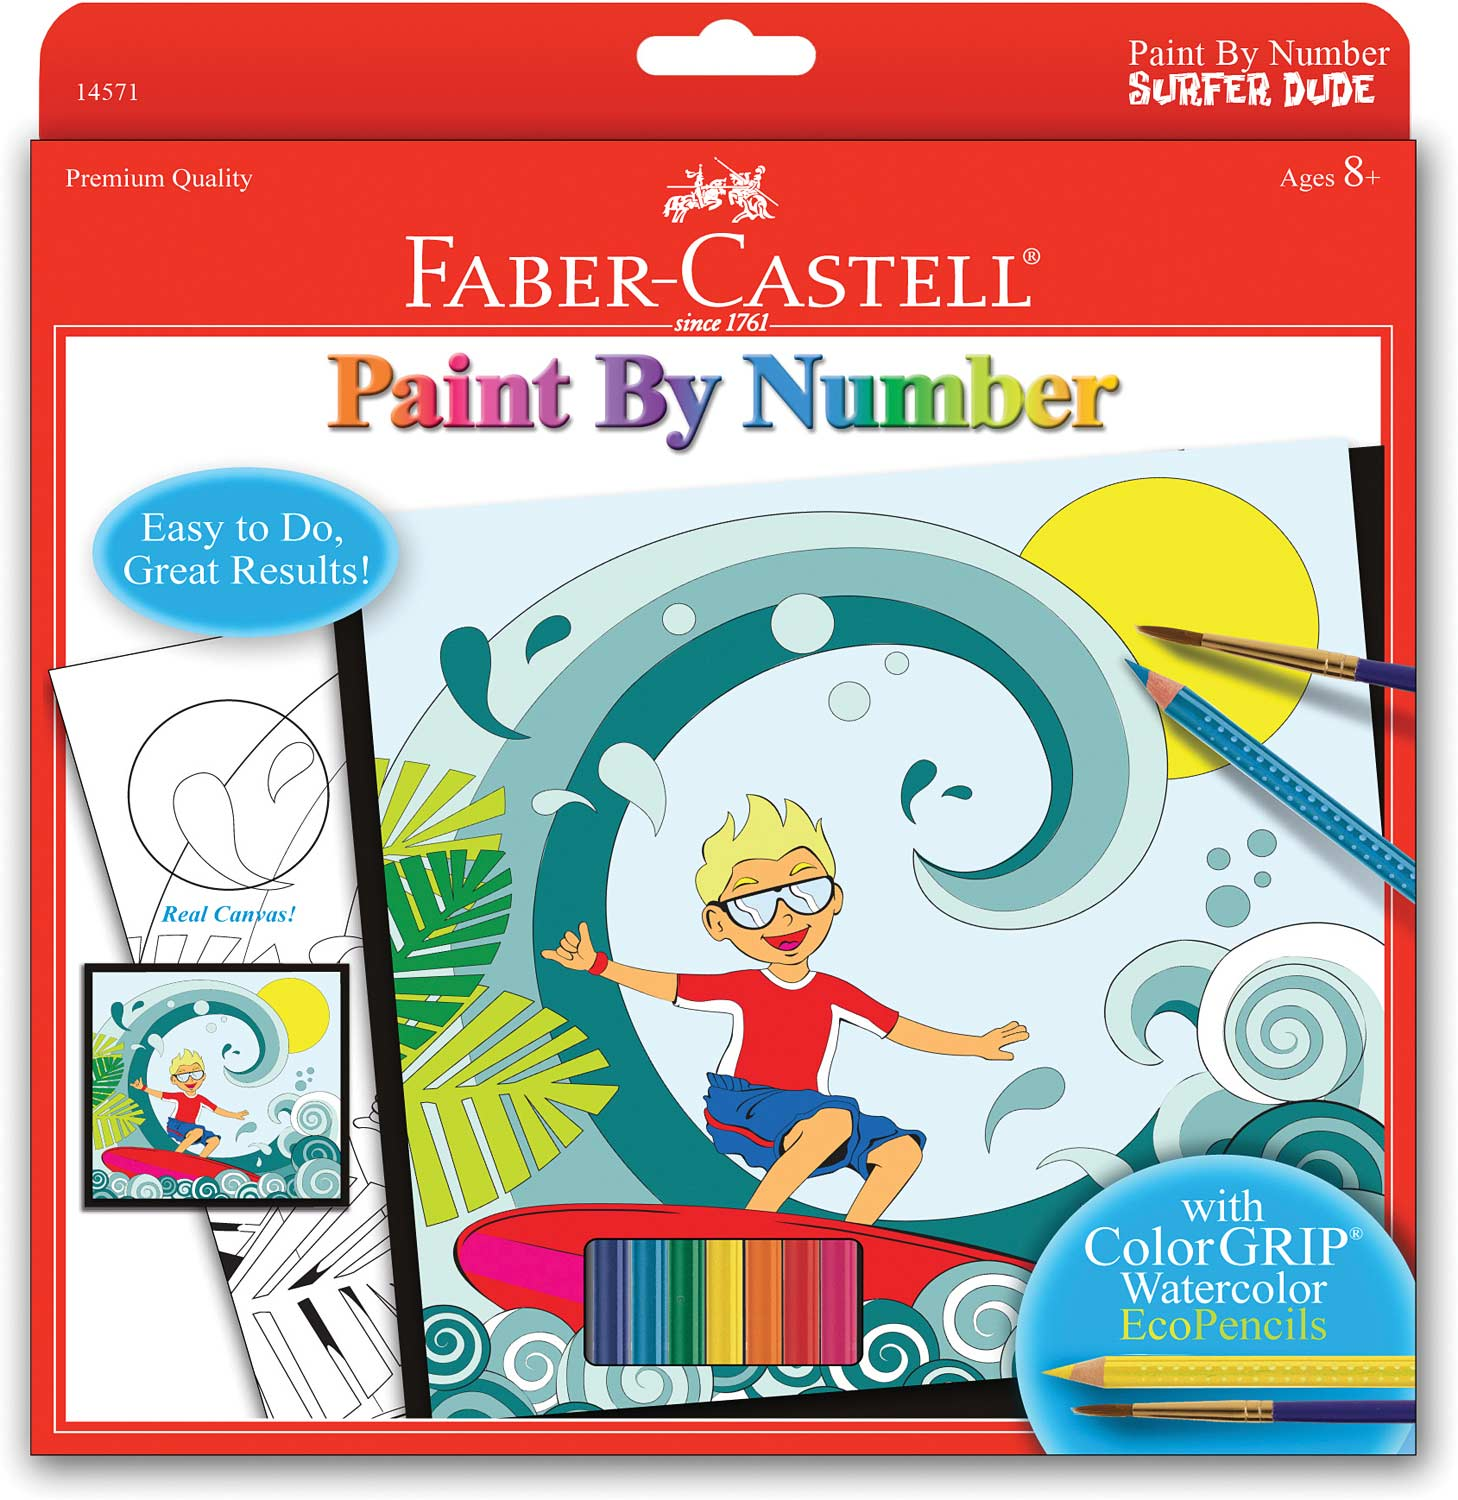 Paint By Number Surfer Dude - Faber Castell